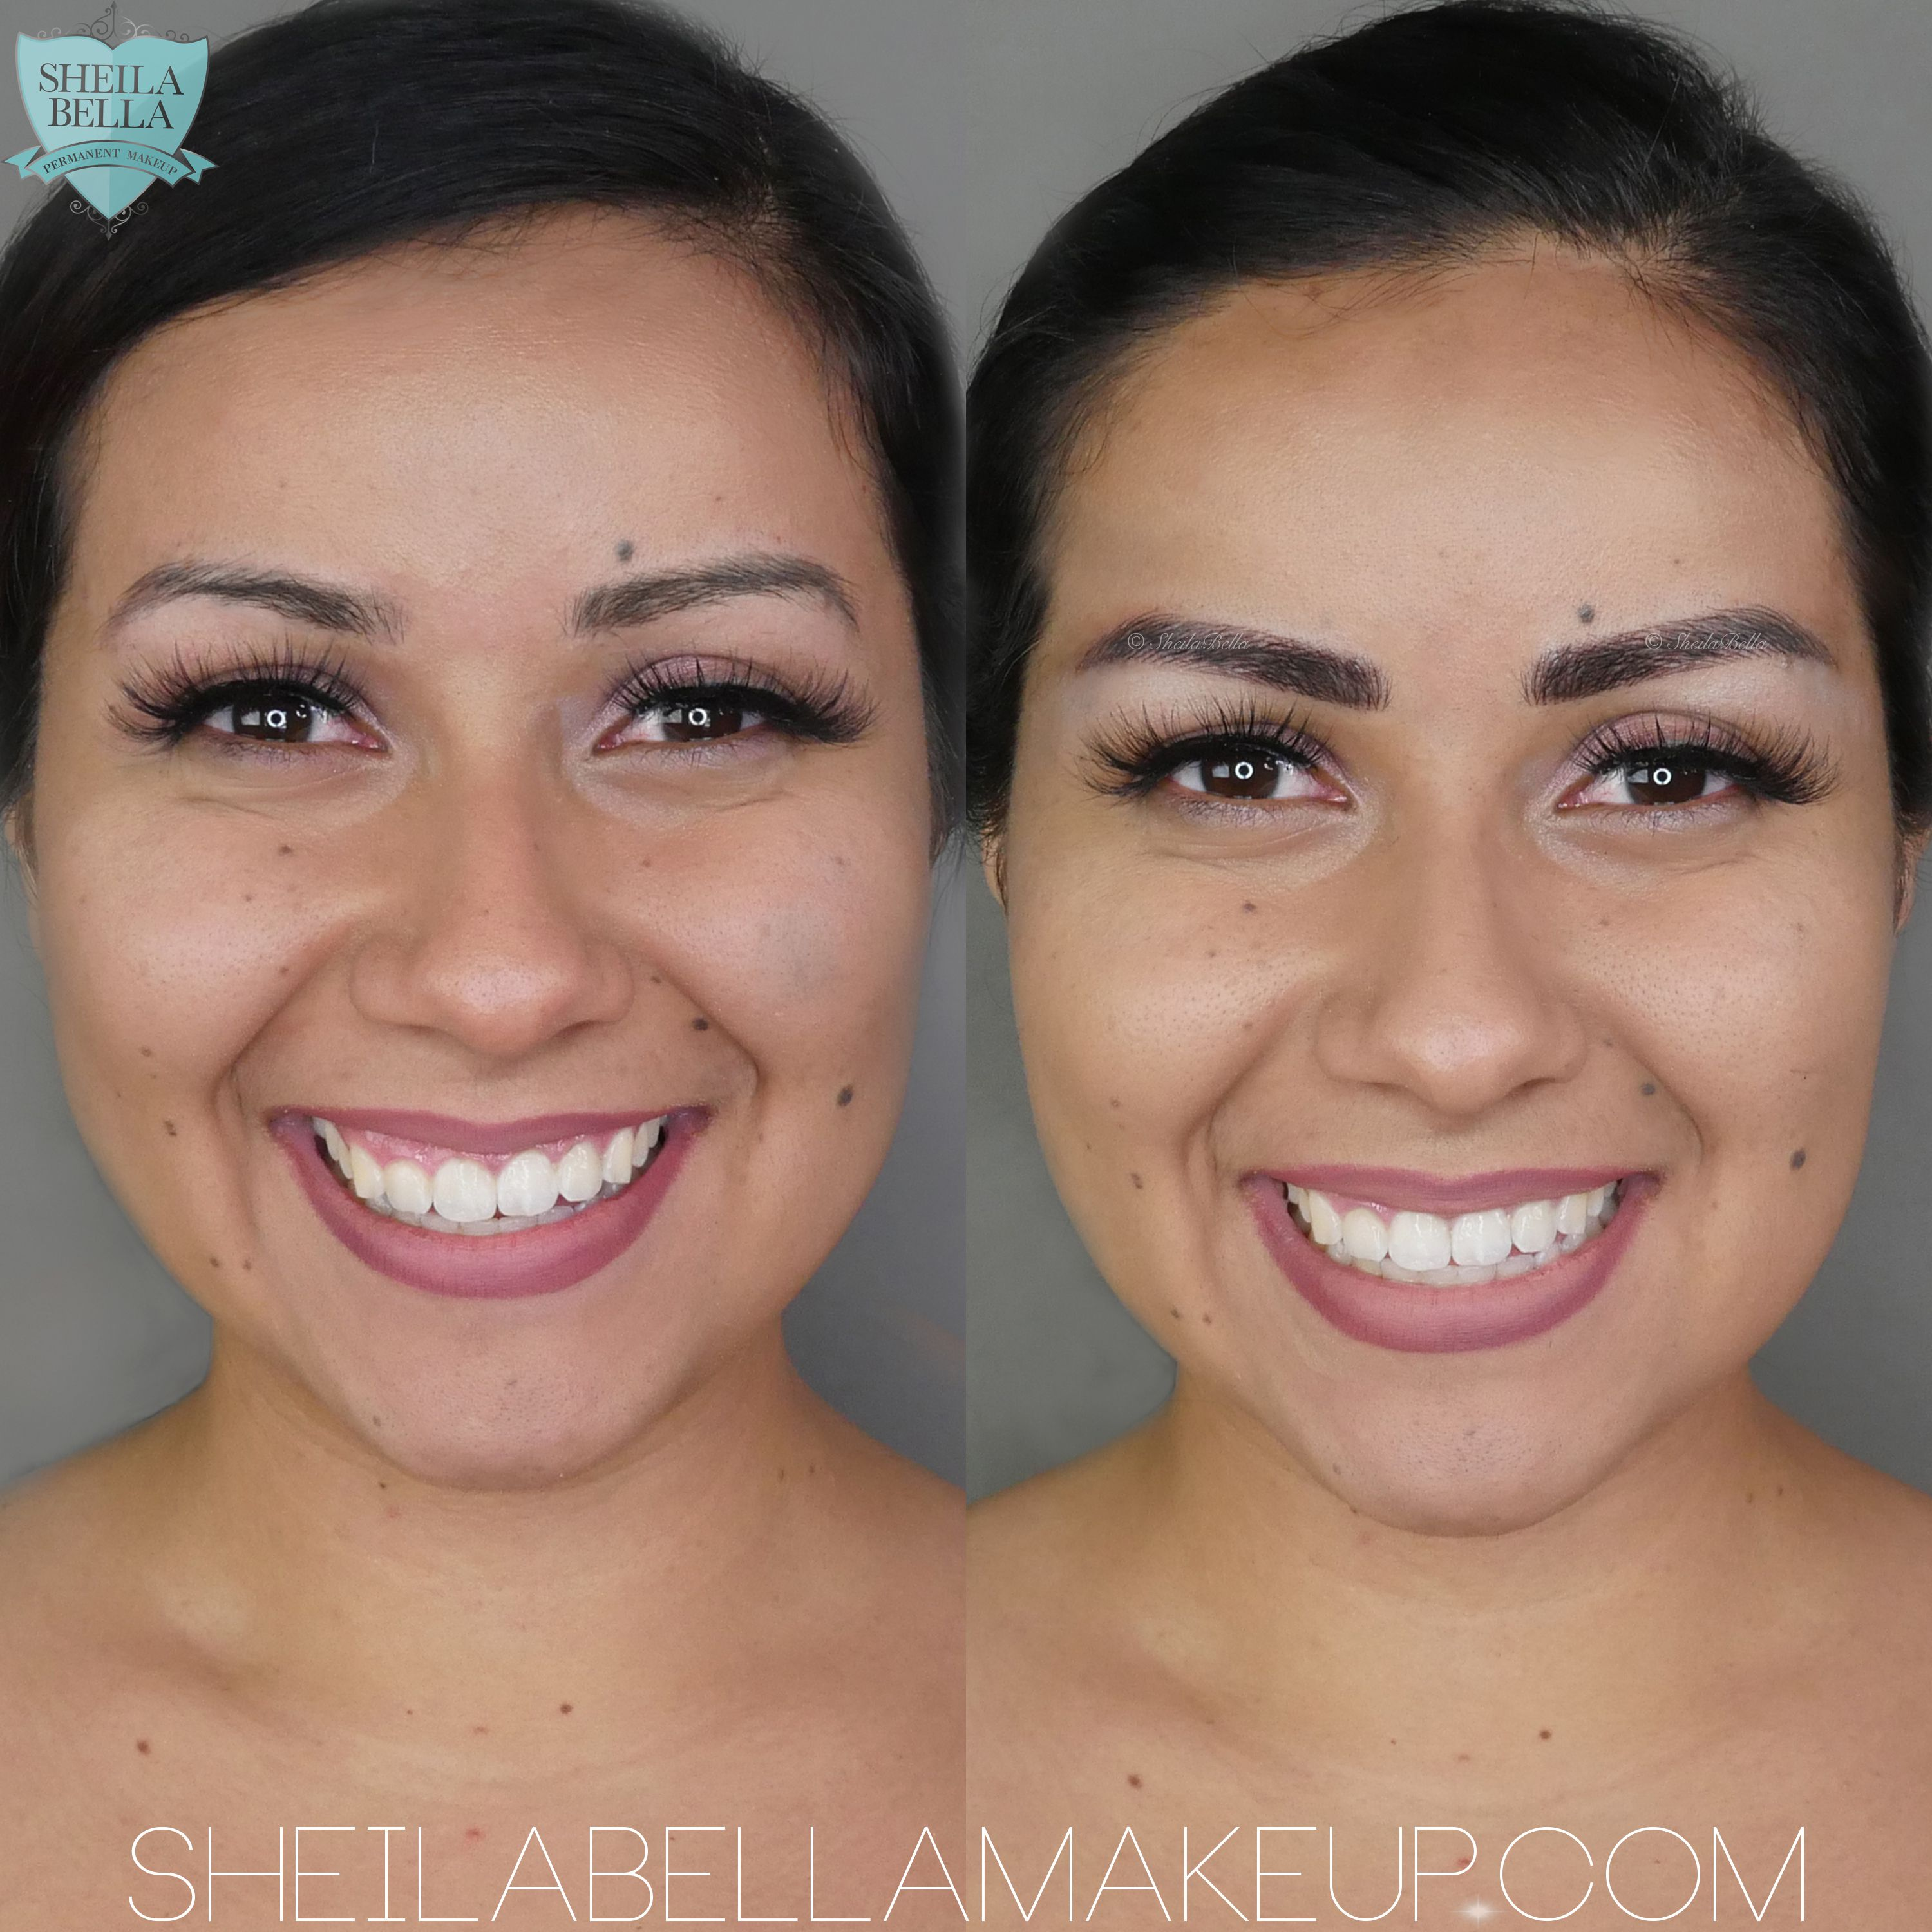 Best Microblading Clinic Sheila Bella Permanent Makeup